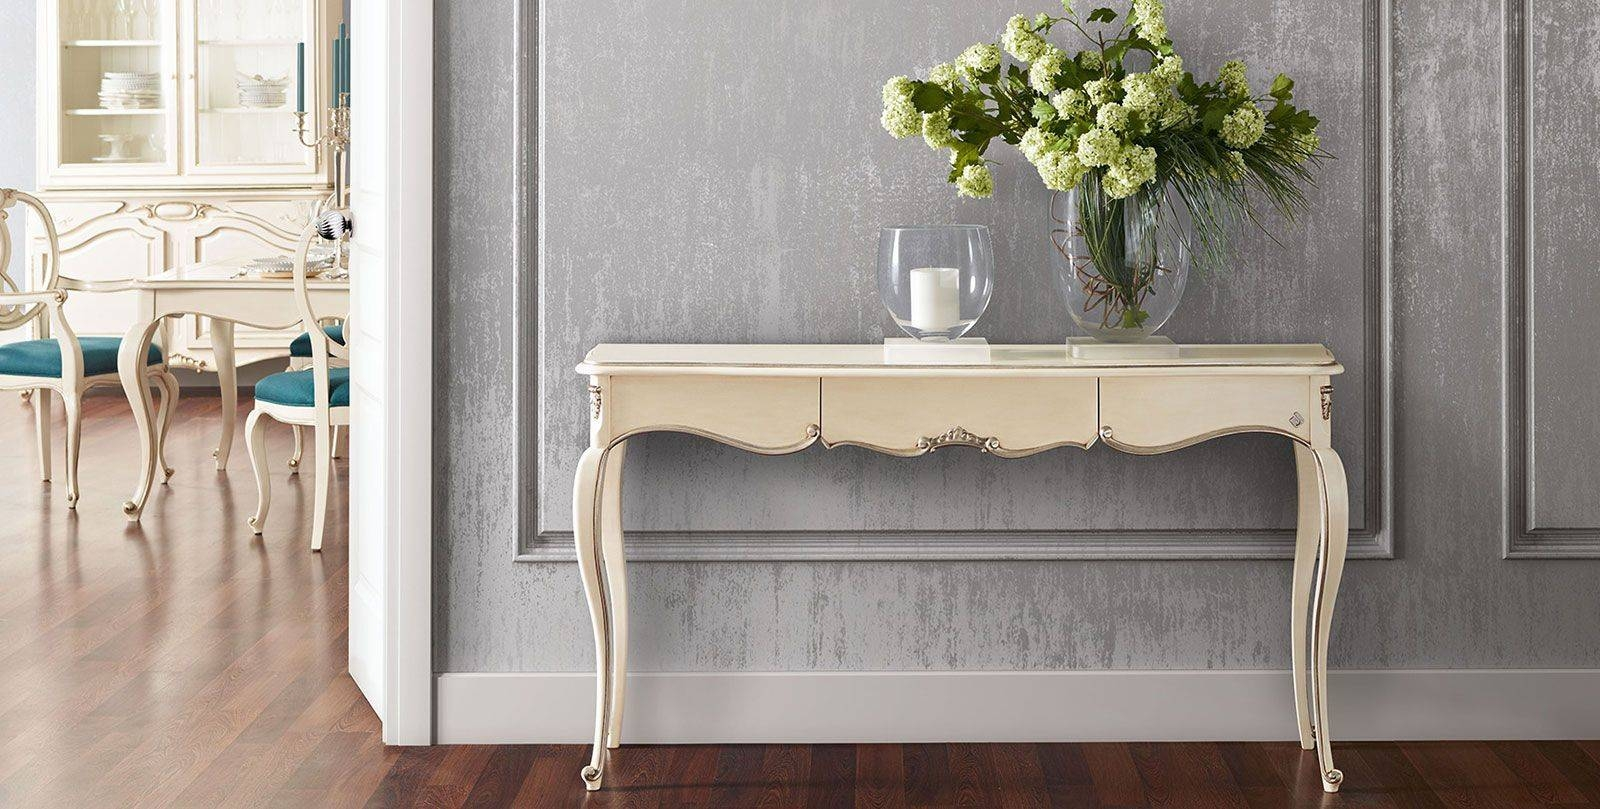 Classic Sideboard Table / Wooden / Rectangular / With Drawer Pertaining To Current Sideboard Furniture (#2 of 15)